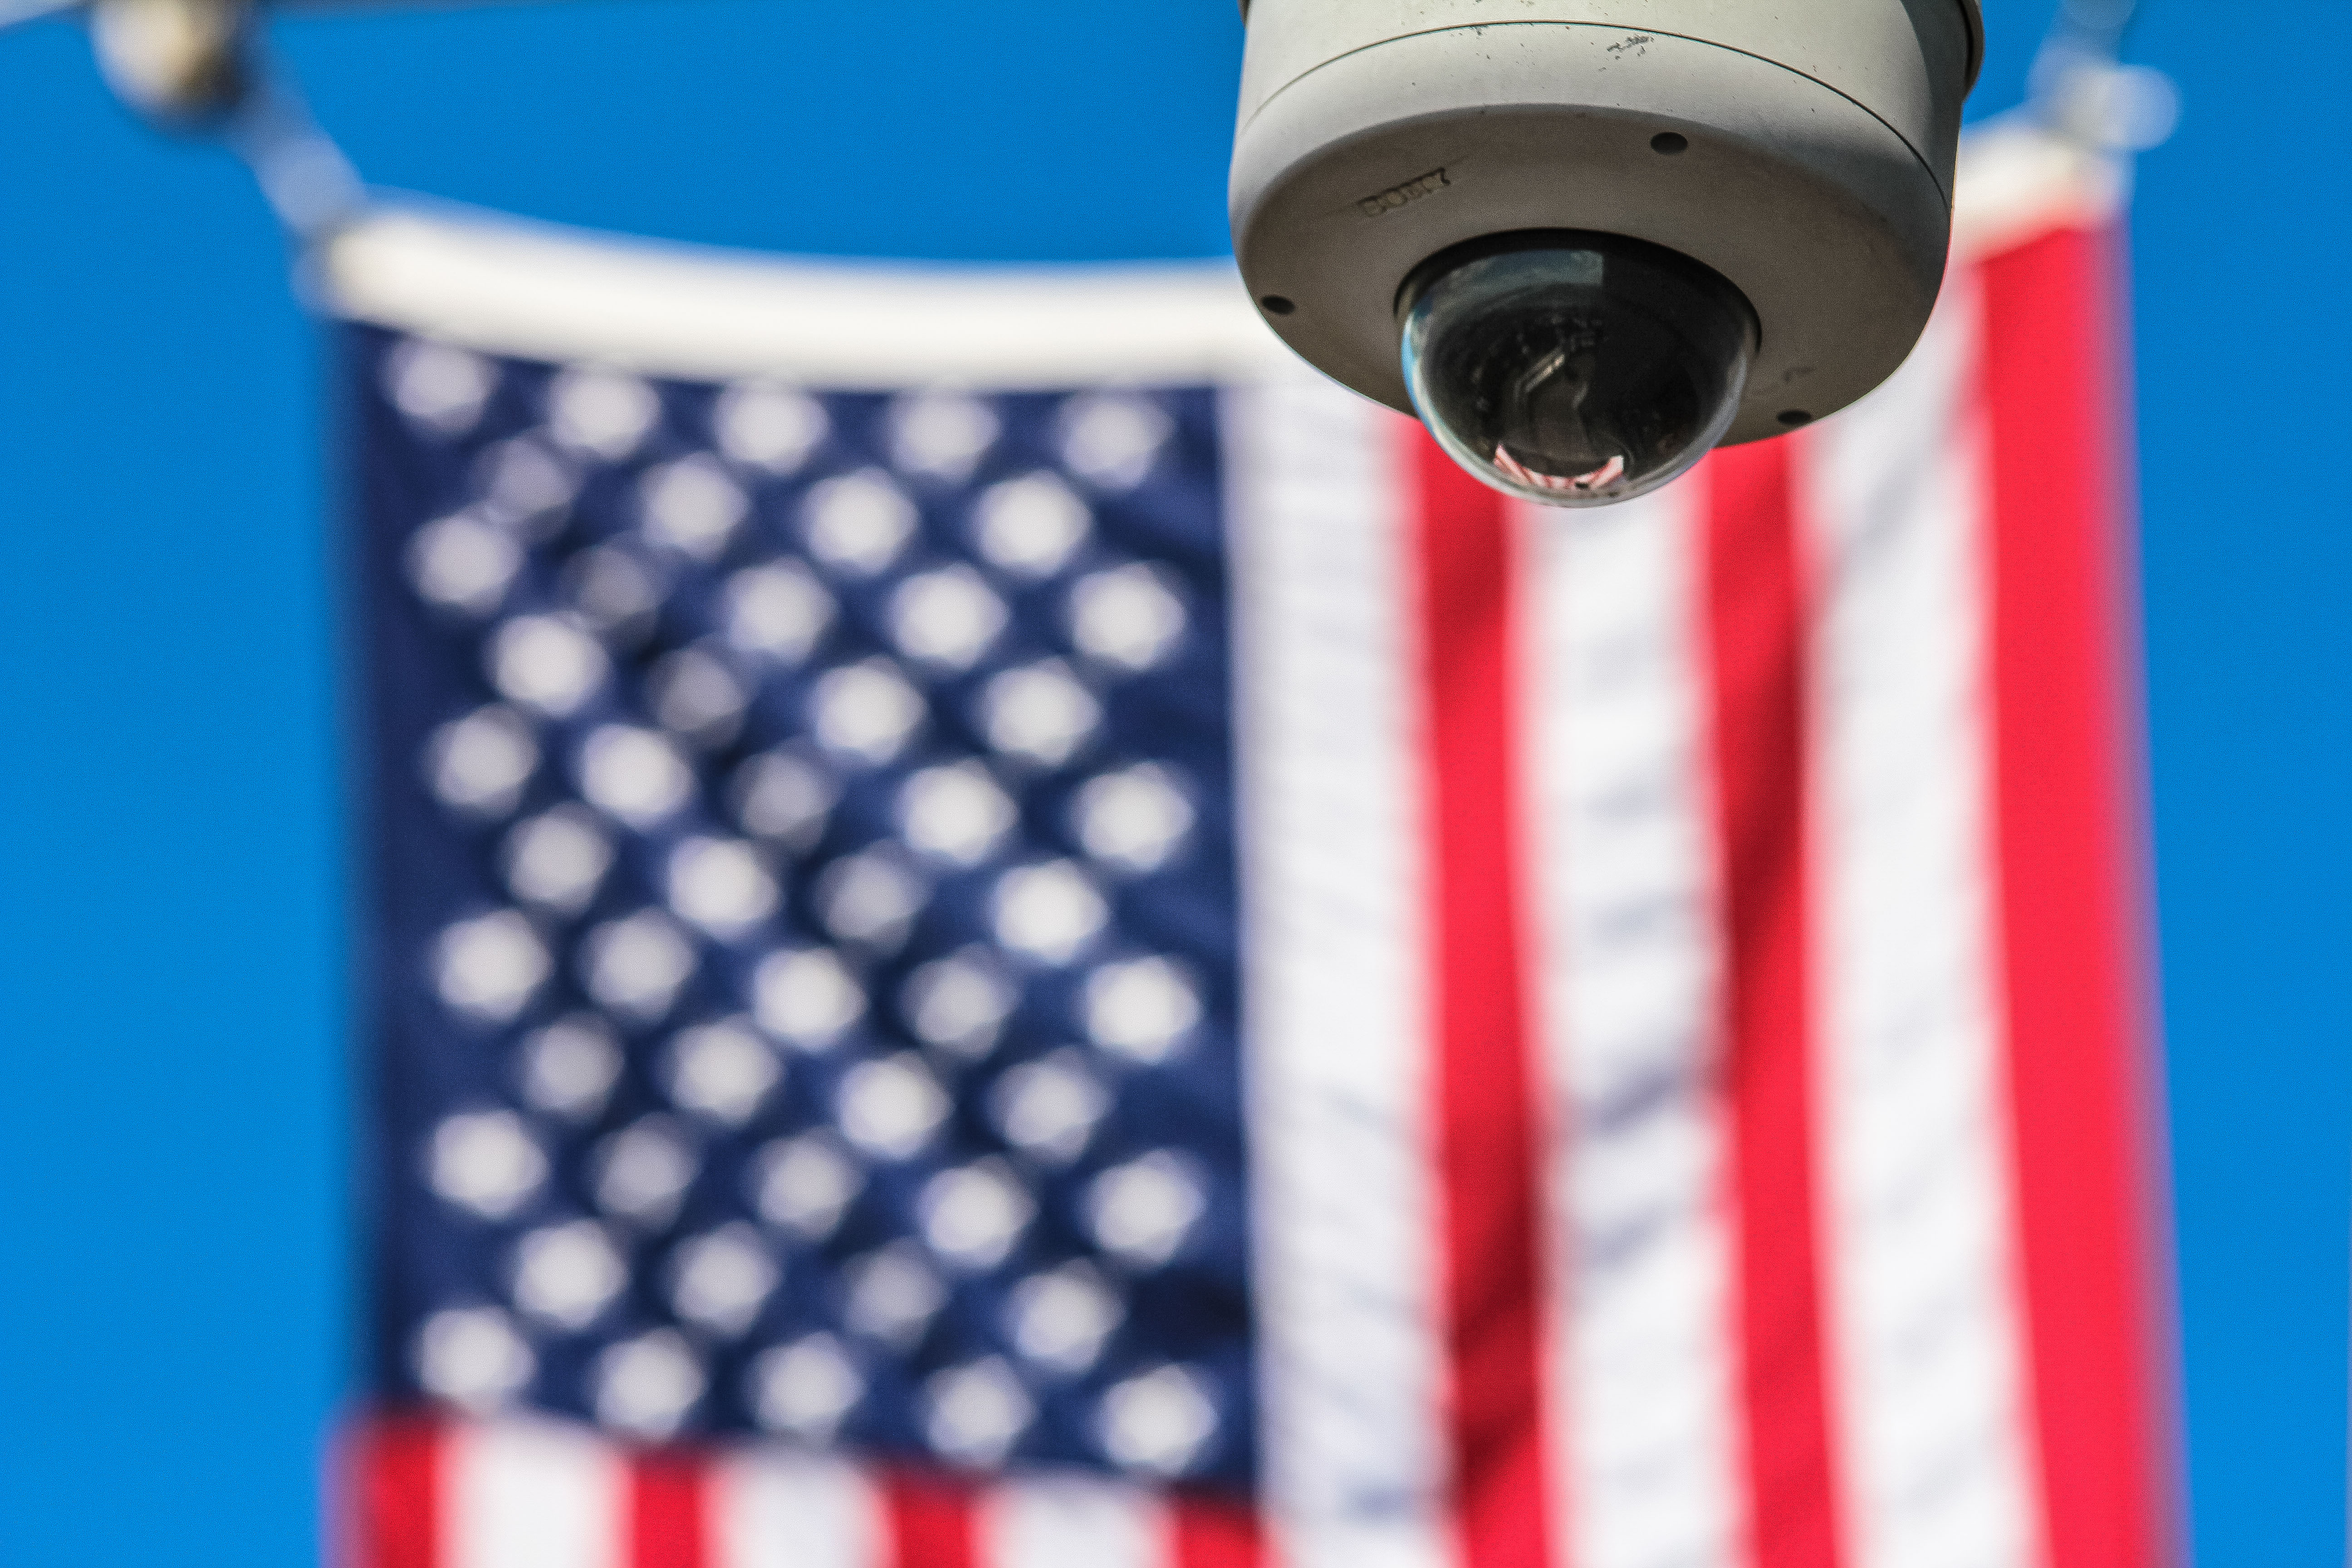 Following GAO Report Detailing IoT Security Risks, Legislatures Proffer Plan to Harden IoT Devices